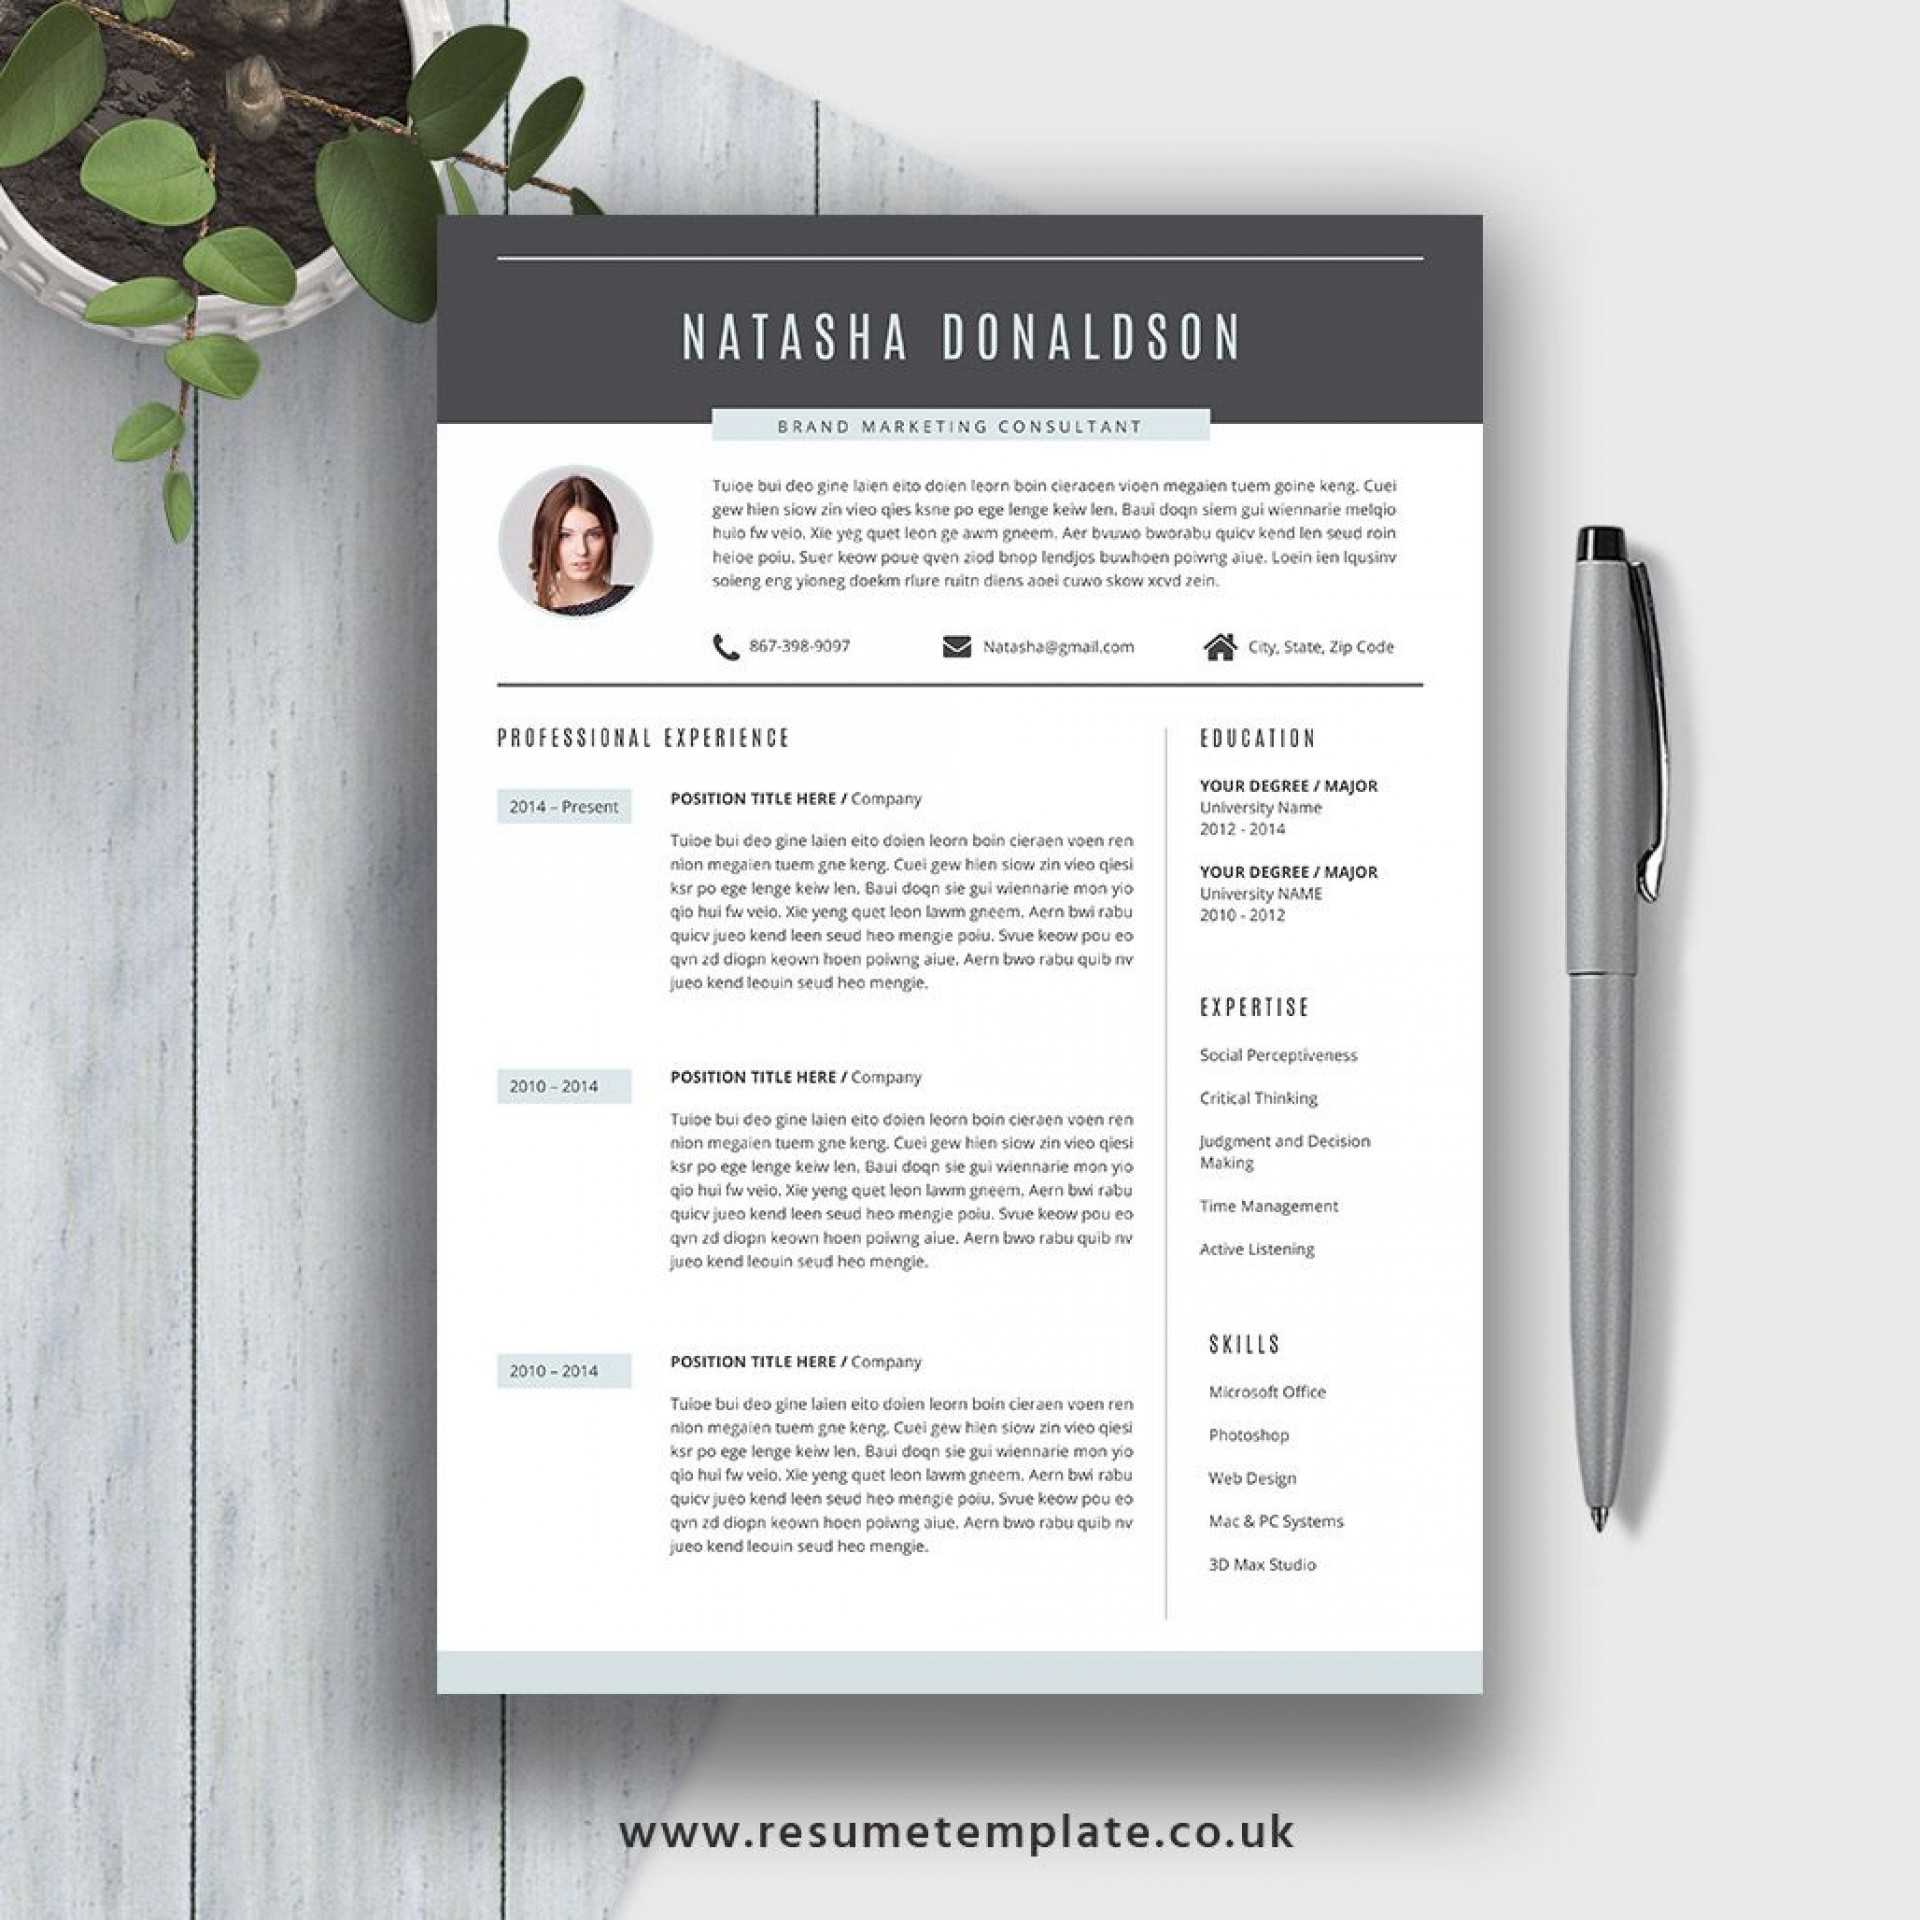 010 Unusual Microsoft Word Resume Template 2020 High Resolution  Free1920